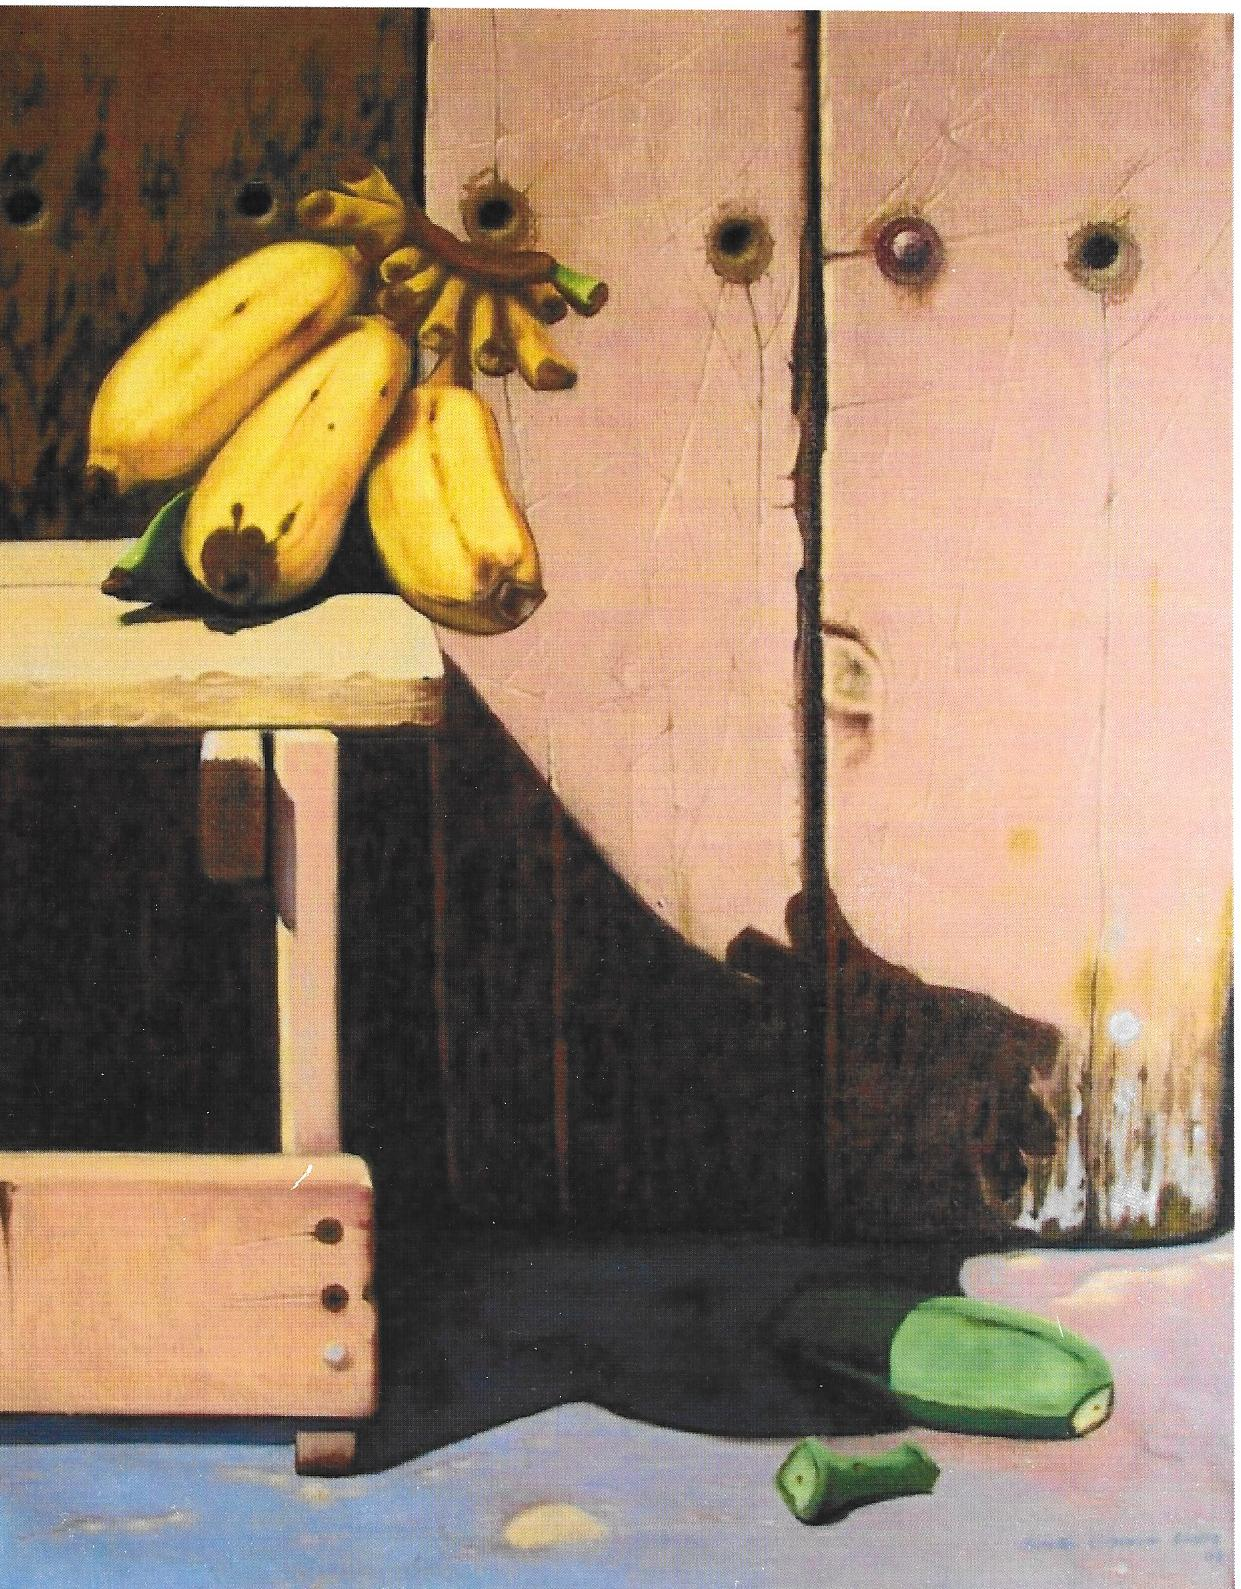 Bananas & Bench